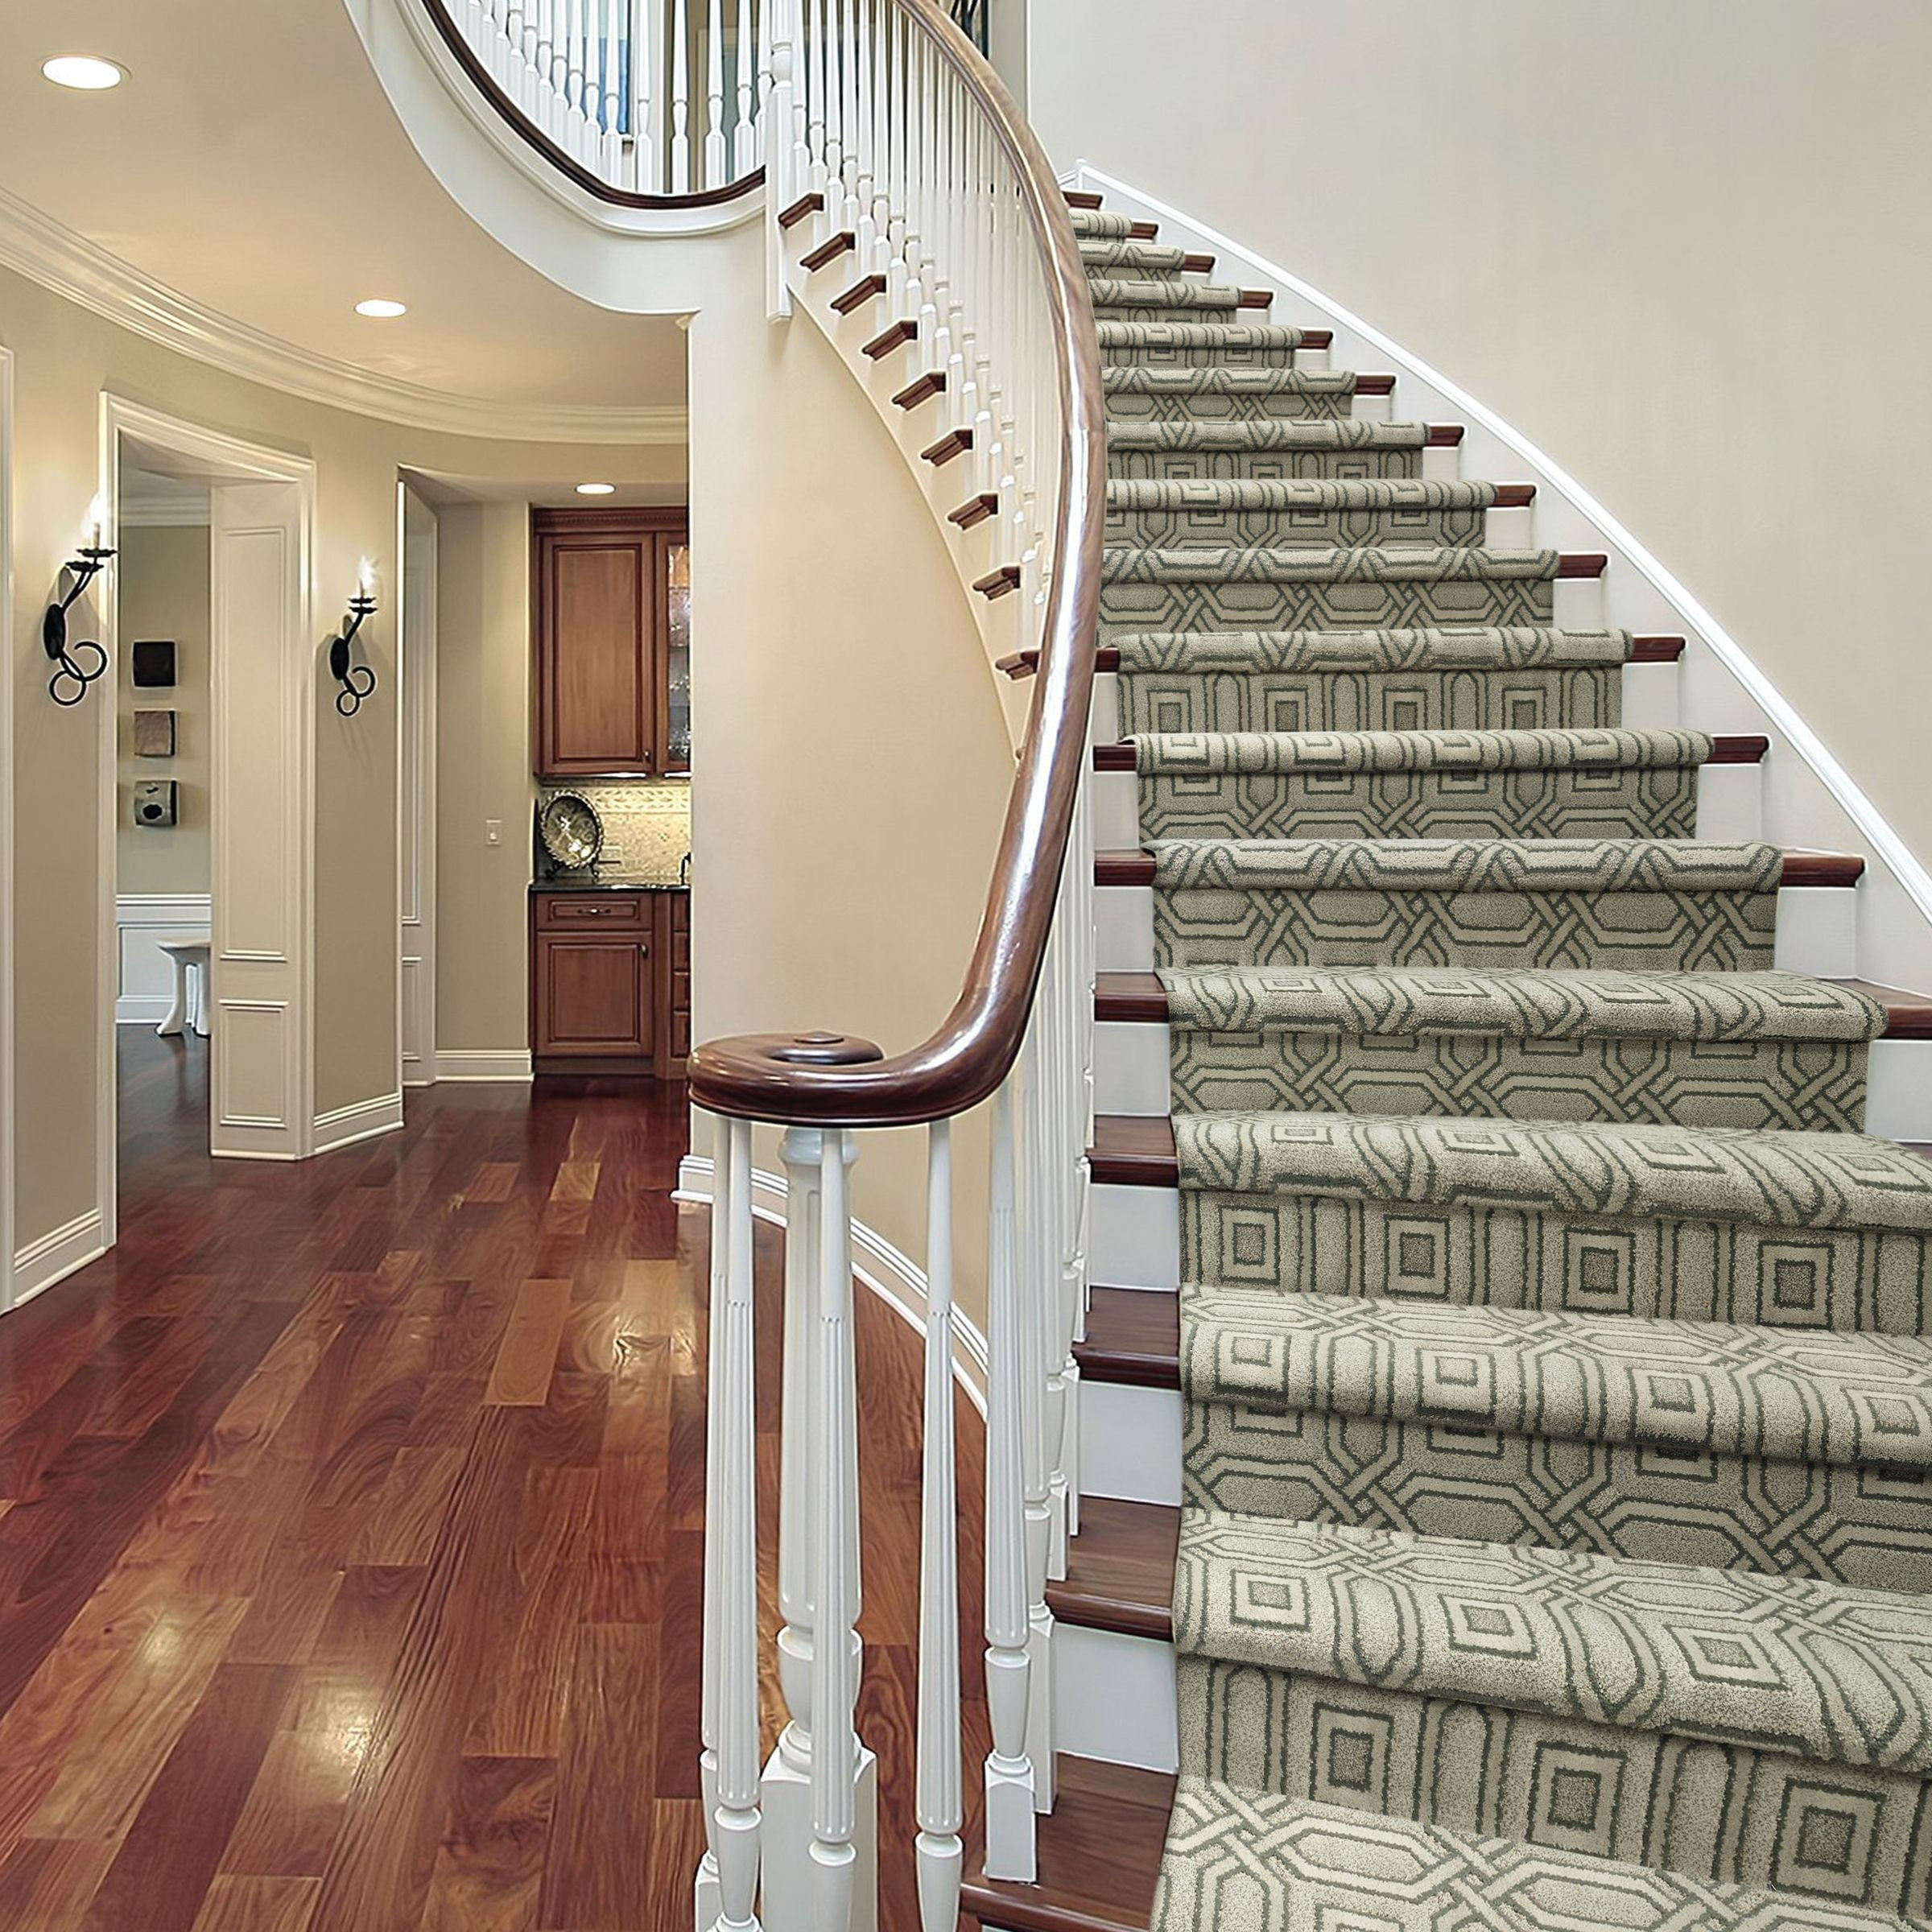 how to refinish hardwood floors under carpet of tuftex pavilion tuftex stanton stairways pinterest pavilion in tuftex pavilion hardwood floors stairways rugs on carpet pavilion villa stairs